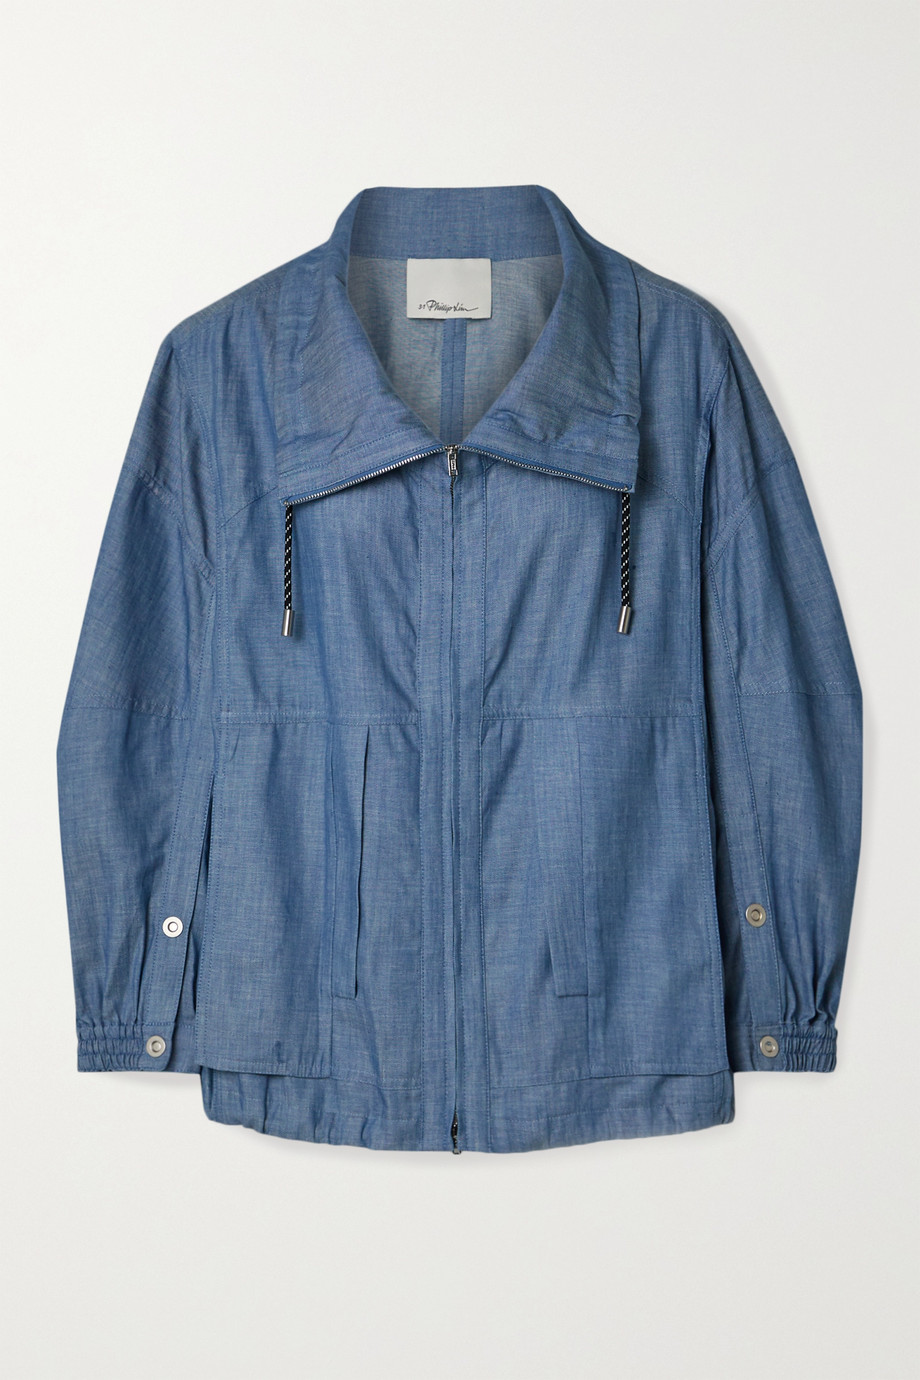 3.1 Phillip Lim Cotton-chambray jacket